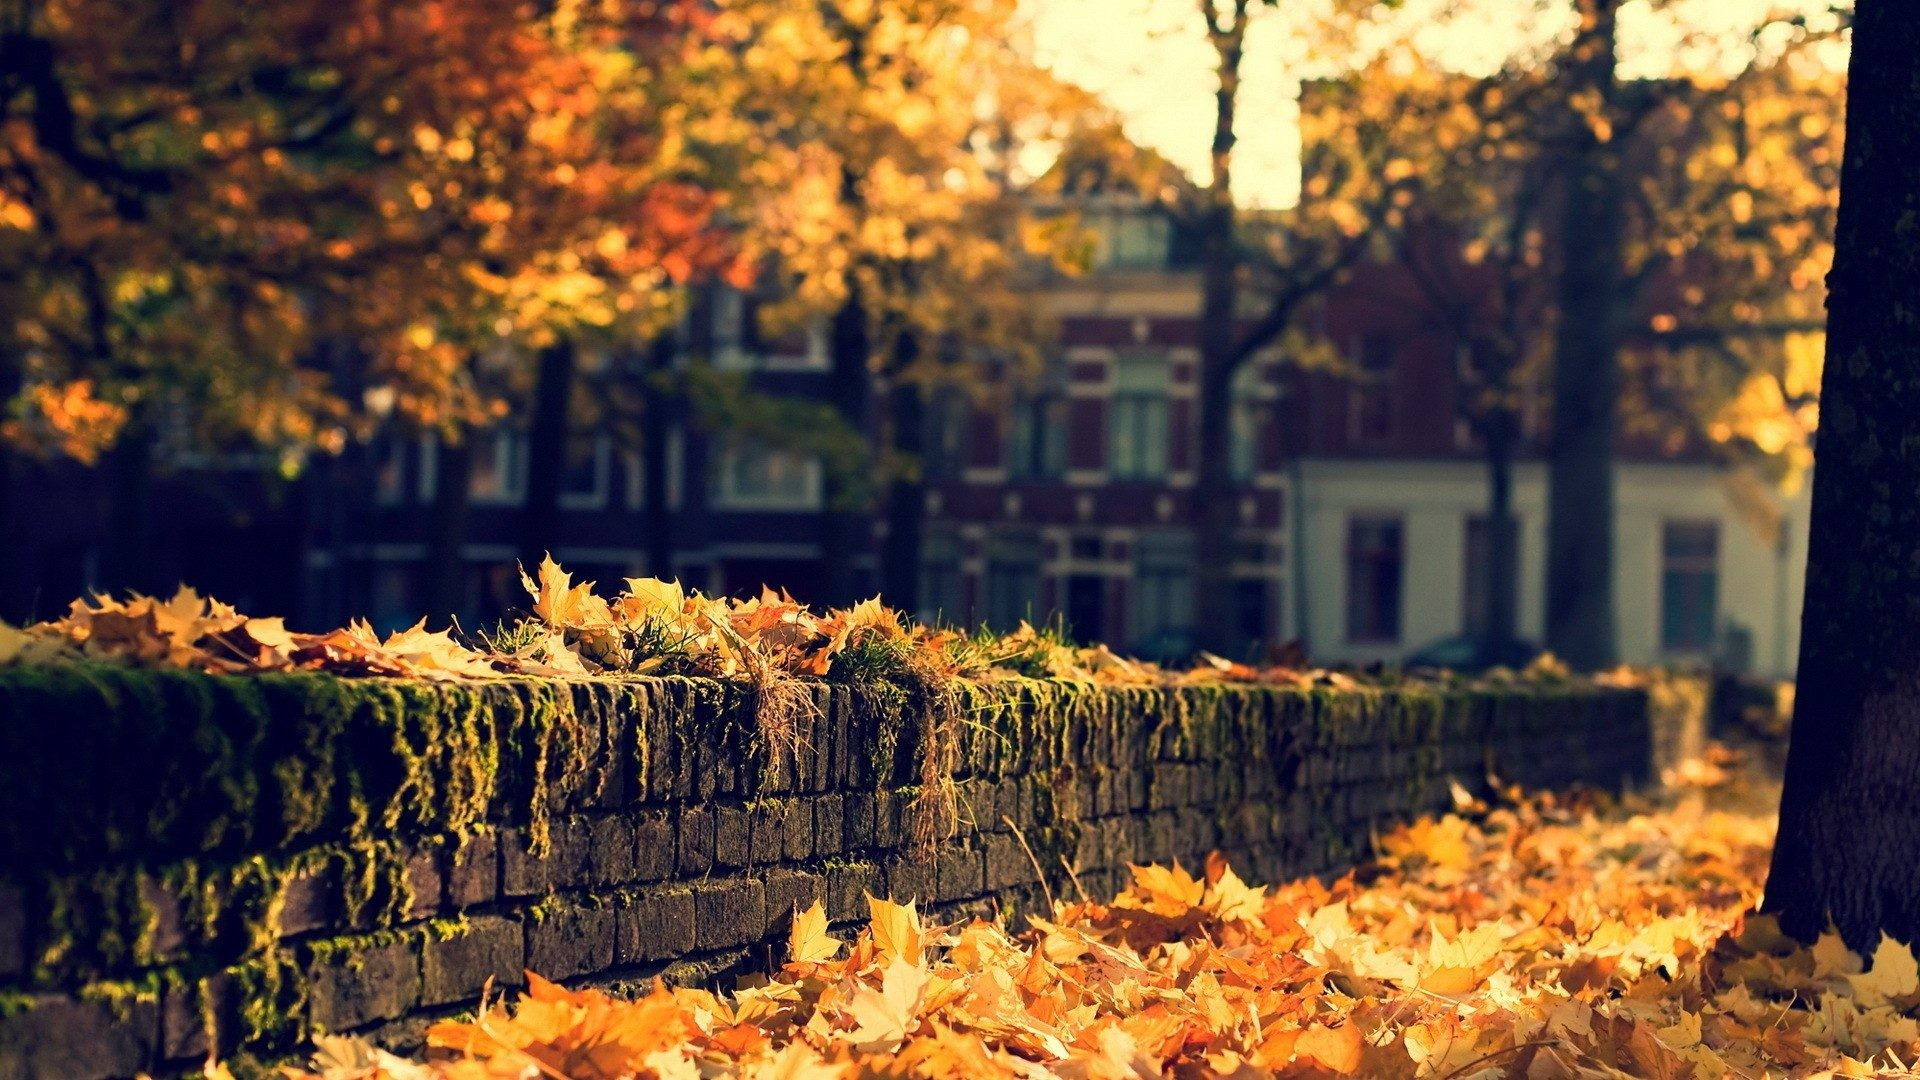 autumn desktop wallpapers backgrounds ·①